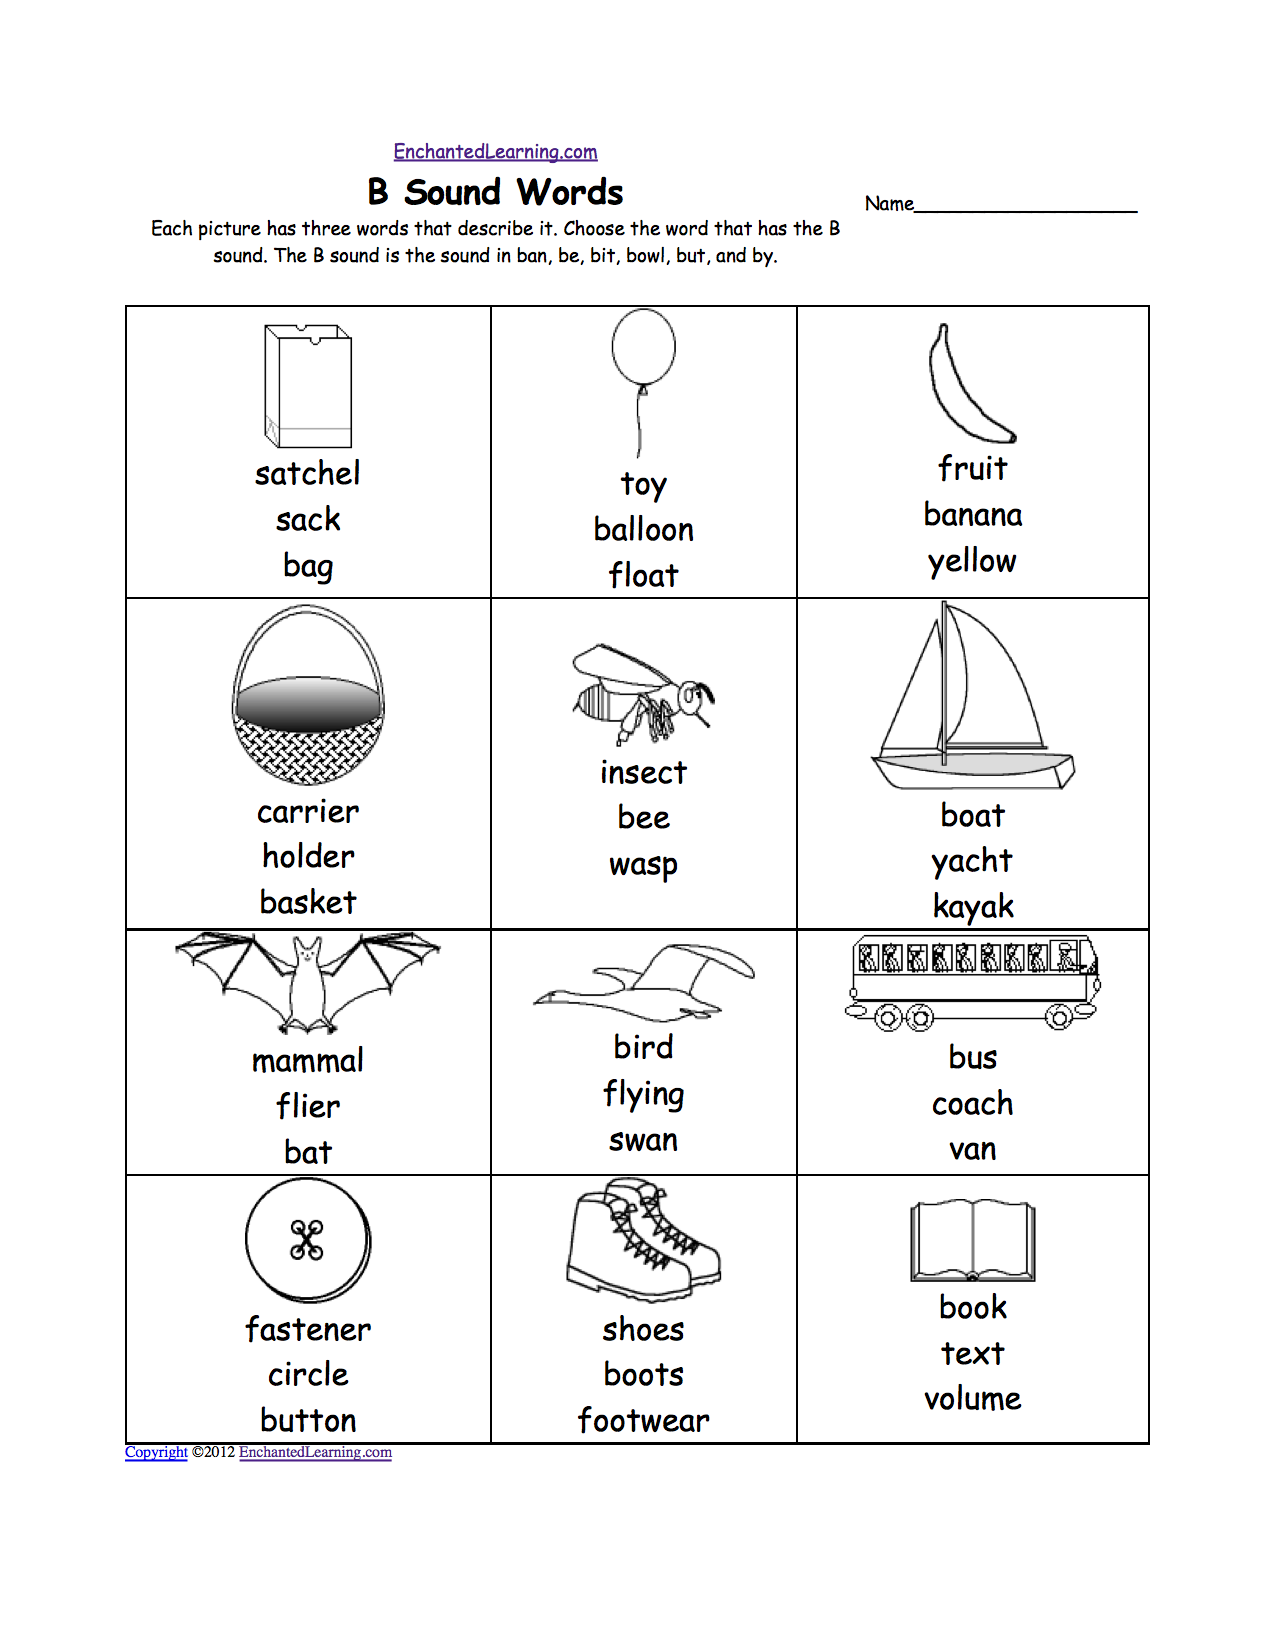 Proatmealus  Nice Phonics Worksheets Multiple Choice Worksheets To Print  With Remarkable Quotbquot Sound Phonics Worksheet Multiple Choice Each Picture Has Three Words That Describe It Choose The Word That Has A Quotbquot Sound The Quotbquot Sound Is The Sound  With Endearing Number  Worksheets For Preschool Also Themes Of Geography Worksheets In Addition Storyboard Worksheets And English As A Second Language Worksheets For Adults As Well As Letter M Worksheet Kindergarten Additionally  Times Multiplication Worksheets From Enchantedlearningcom With Proatmealus  Remarkable Phonics Worksheets Multiple Choice Worksheets To Print  With Endearing Quotbquot Sound Phonics Worksheet Multiple Choice Each Picture Has Three Words That Describe It Choose The Word That Has A Quotbquot Sound The Quotbquot Sound Is The Sound  And Nice Number  Worksheets For Preschool Also Themes Of Geography Worksheets In Addition Storyboard Worksheets From Enchantedlearningcom